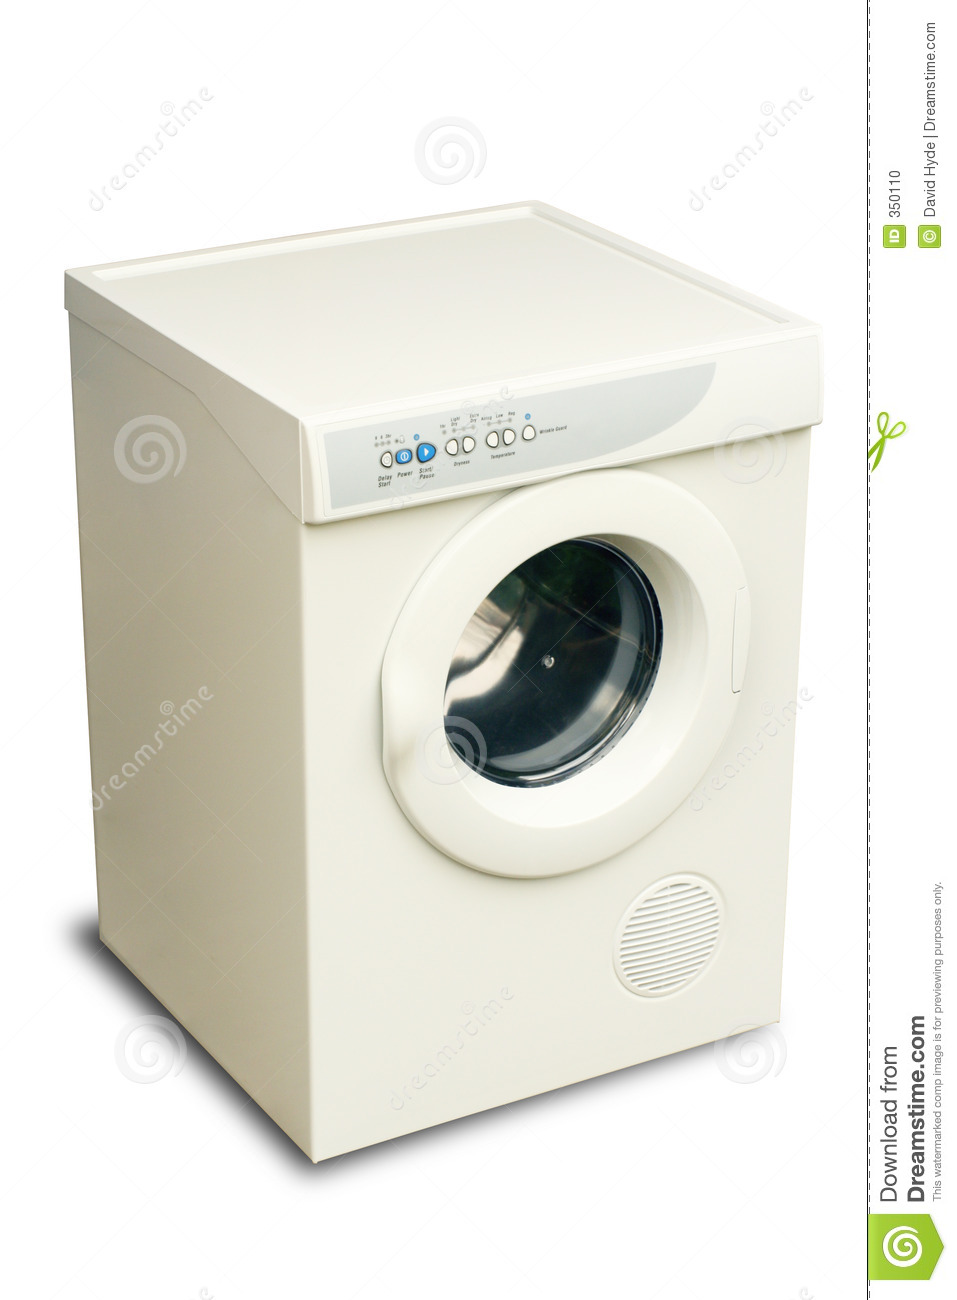 Animated Tumble Dryer ~ Laundry dryer stock photo image